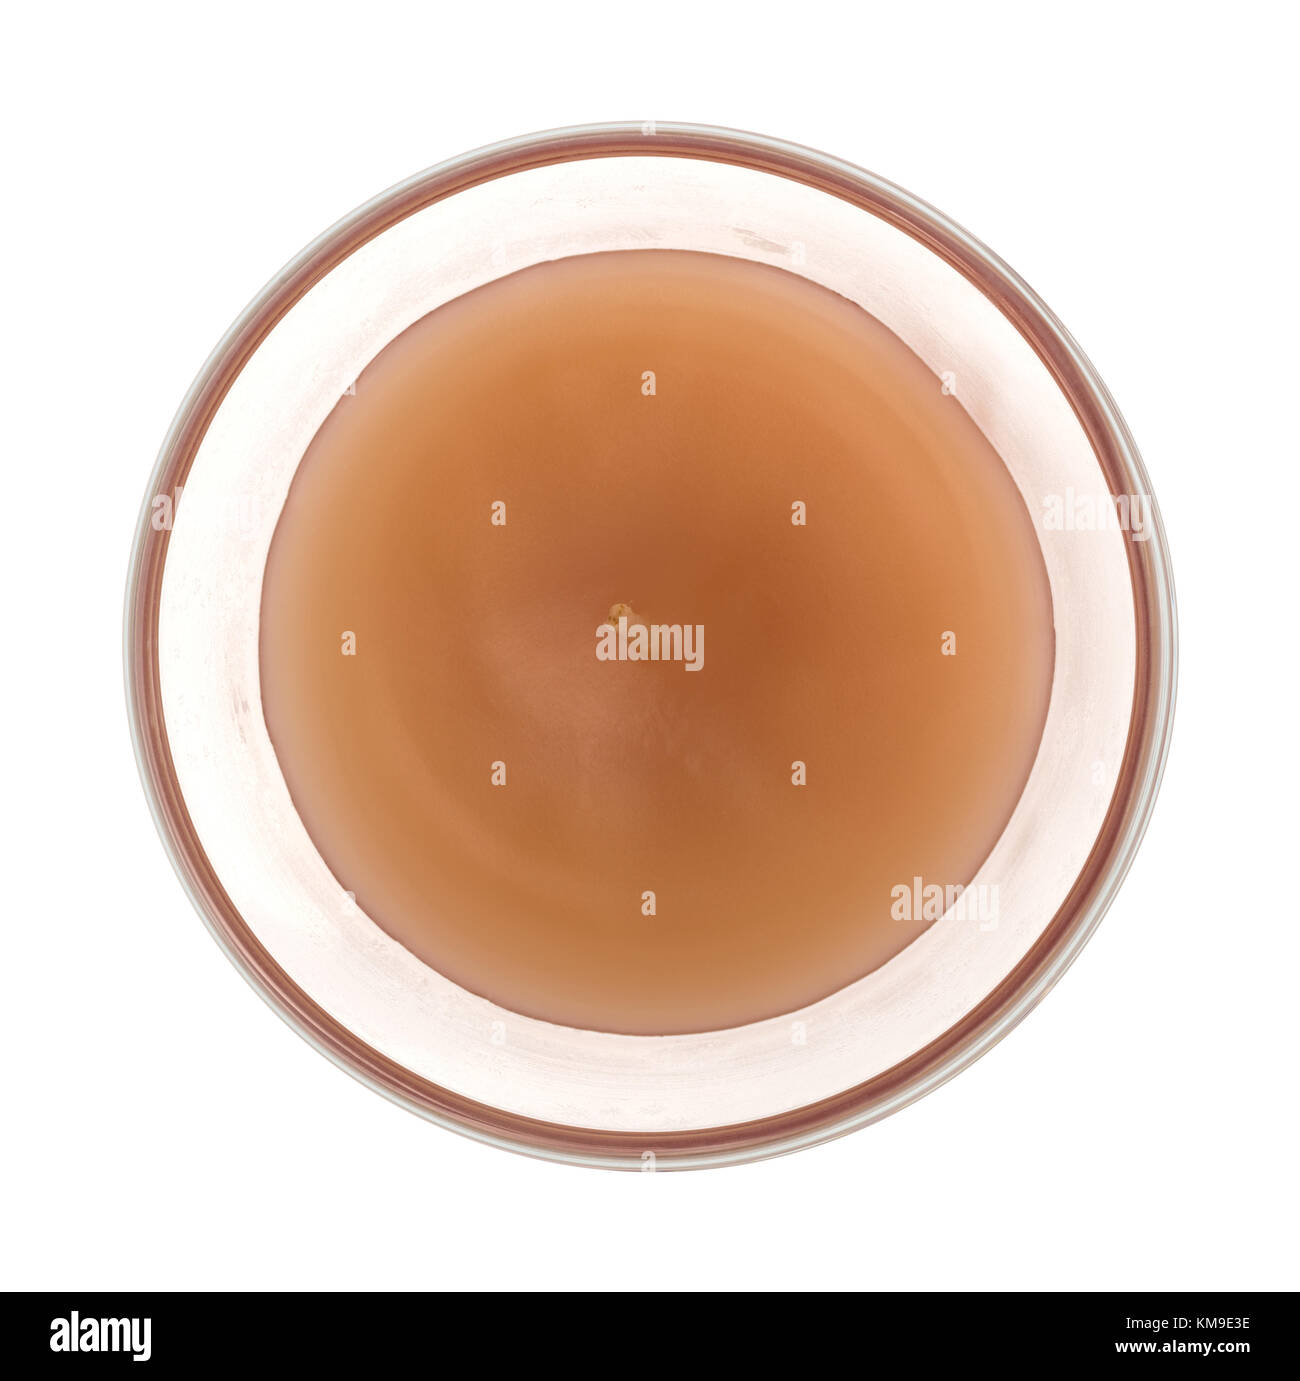 Top view of an unlit scented candle in a boutique glass isolated on a white background. - Stock Image